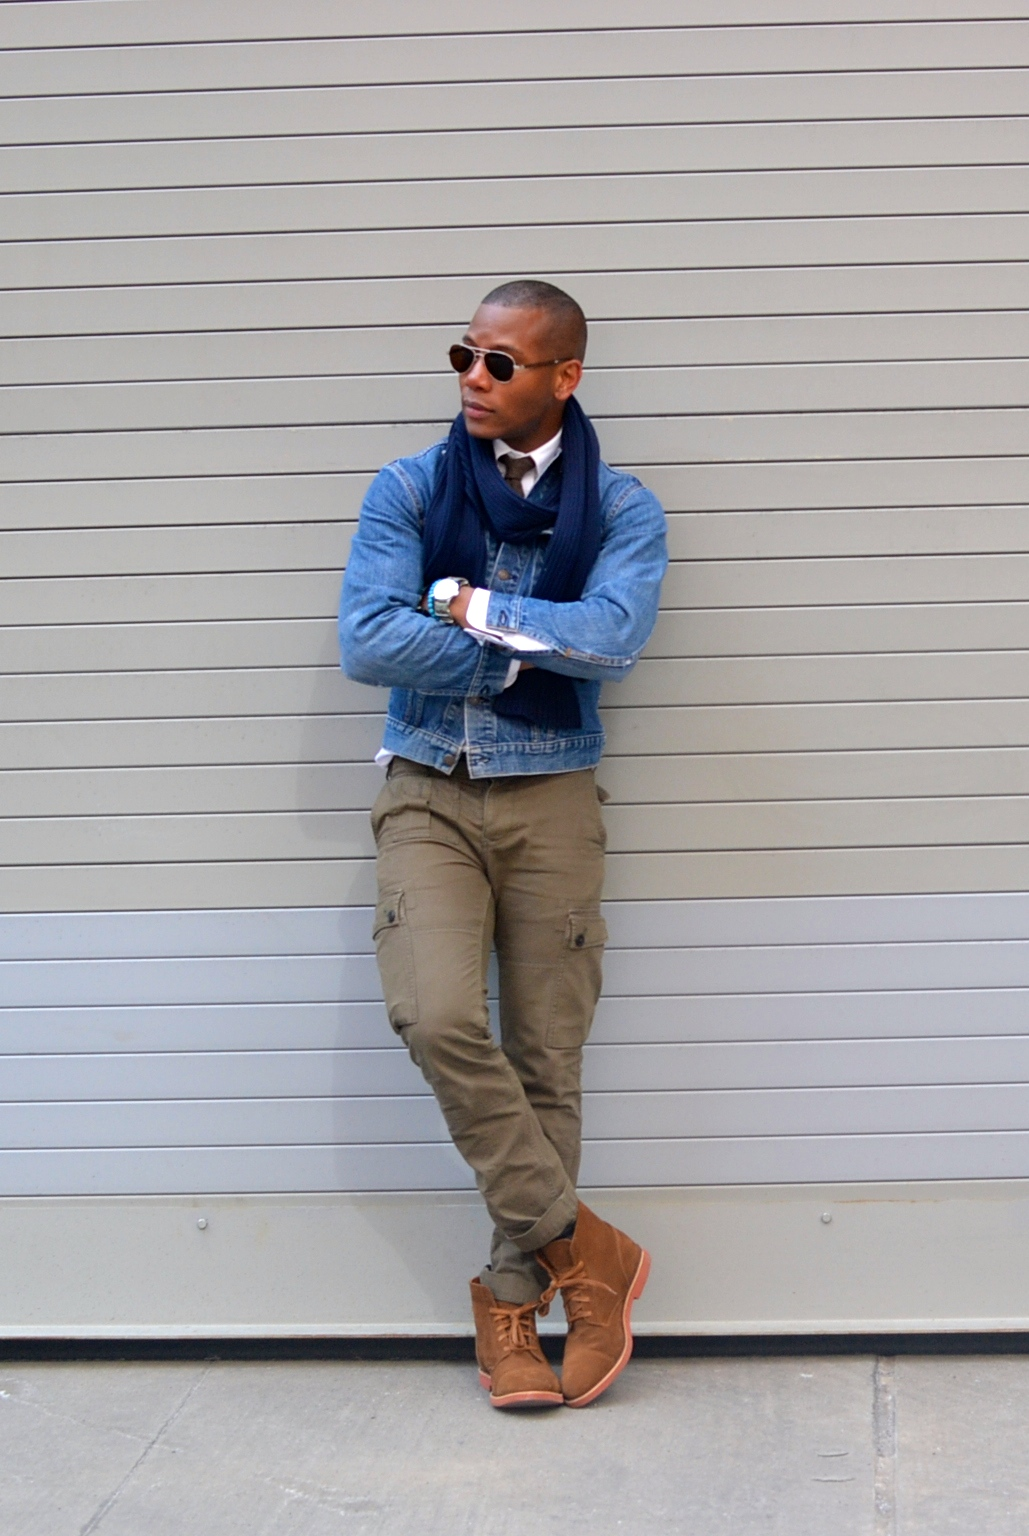 Sabir Peele in Humboldt Suede Boot by Walk Over Shoes